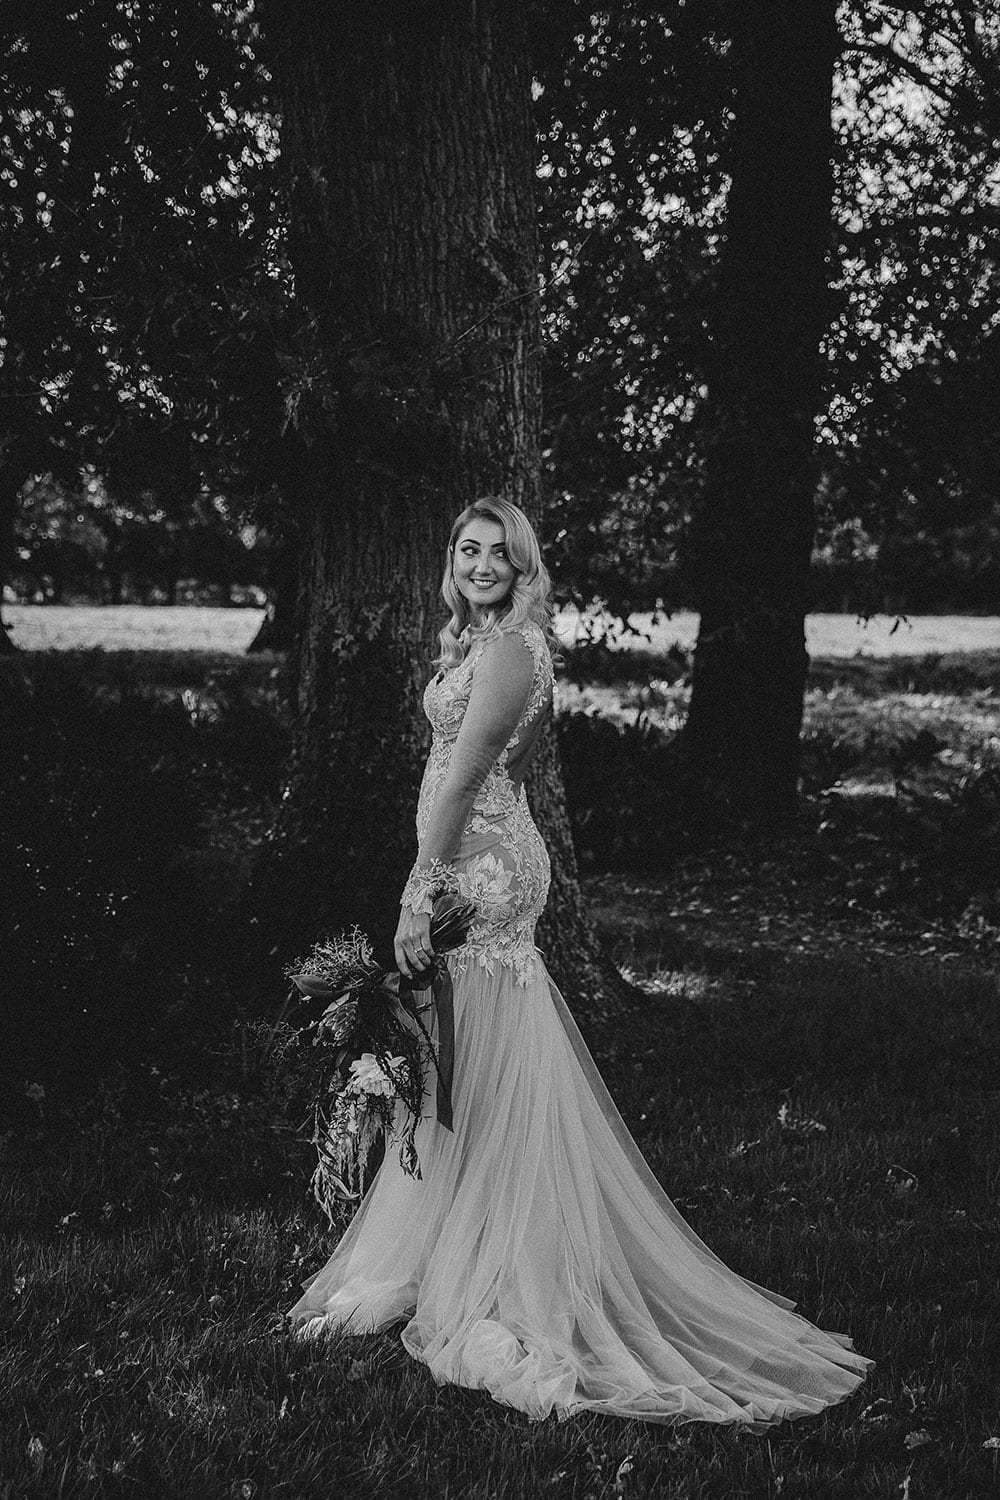 Real Weddings | Vinka Design | Real Brides Wearing Vinka Gowns | Rikki-Lee and Adam - Rikki-Lee portrait with lace detail of bespoke dress displayed with chiffon layers inblack and white